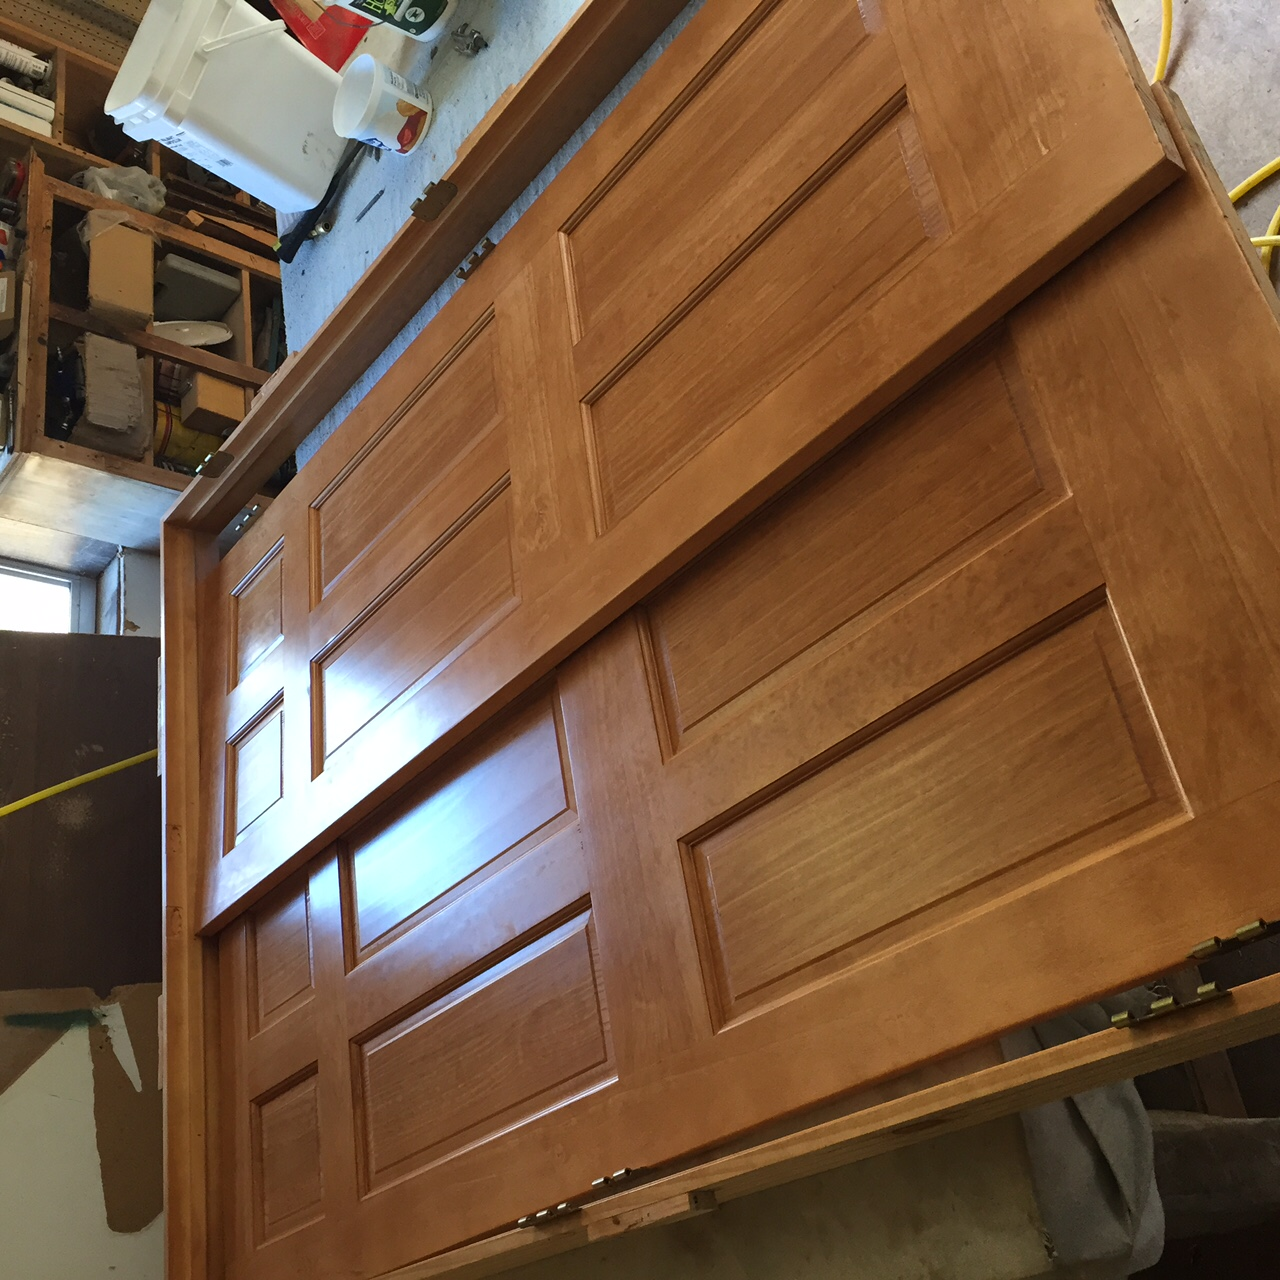 Wood Amish Custom Interior Doors Charleston Sc Now Open Amish Cr Drs Pine  Eventelaan Image Collections